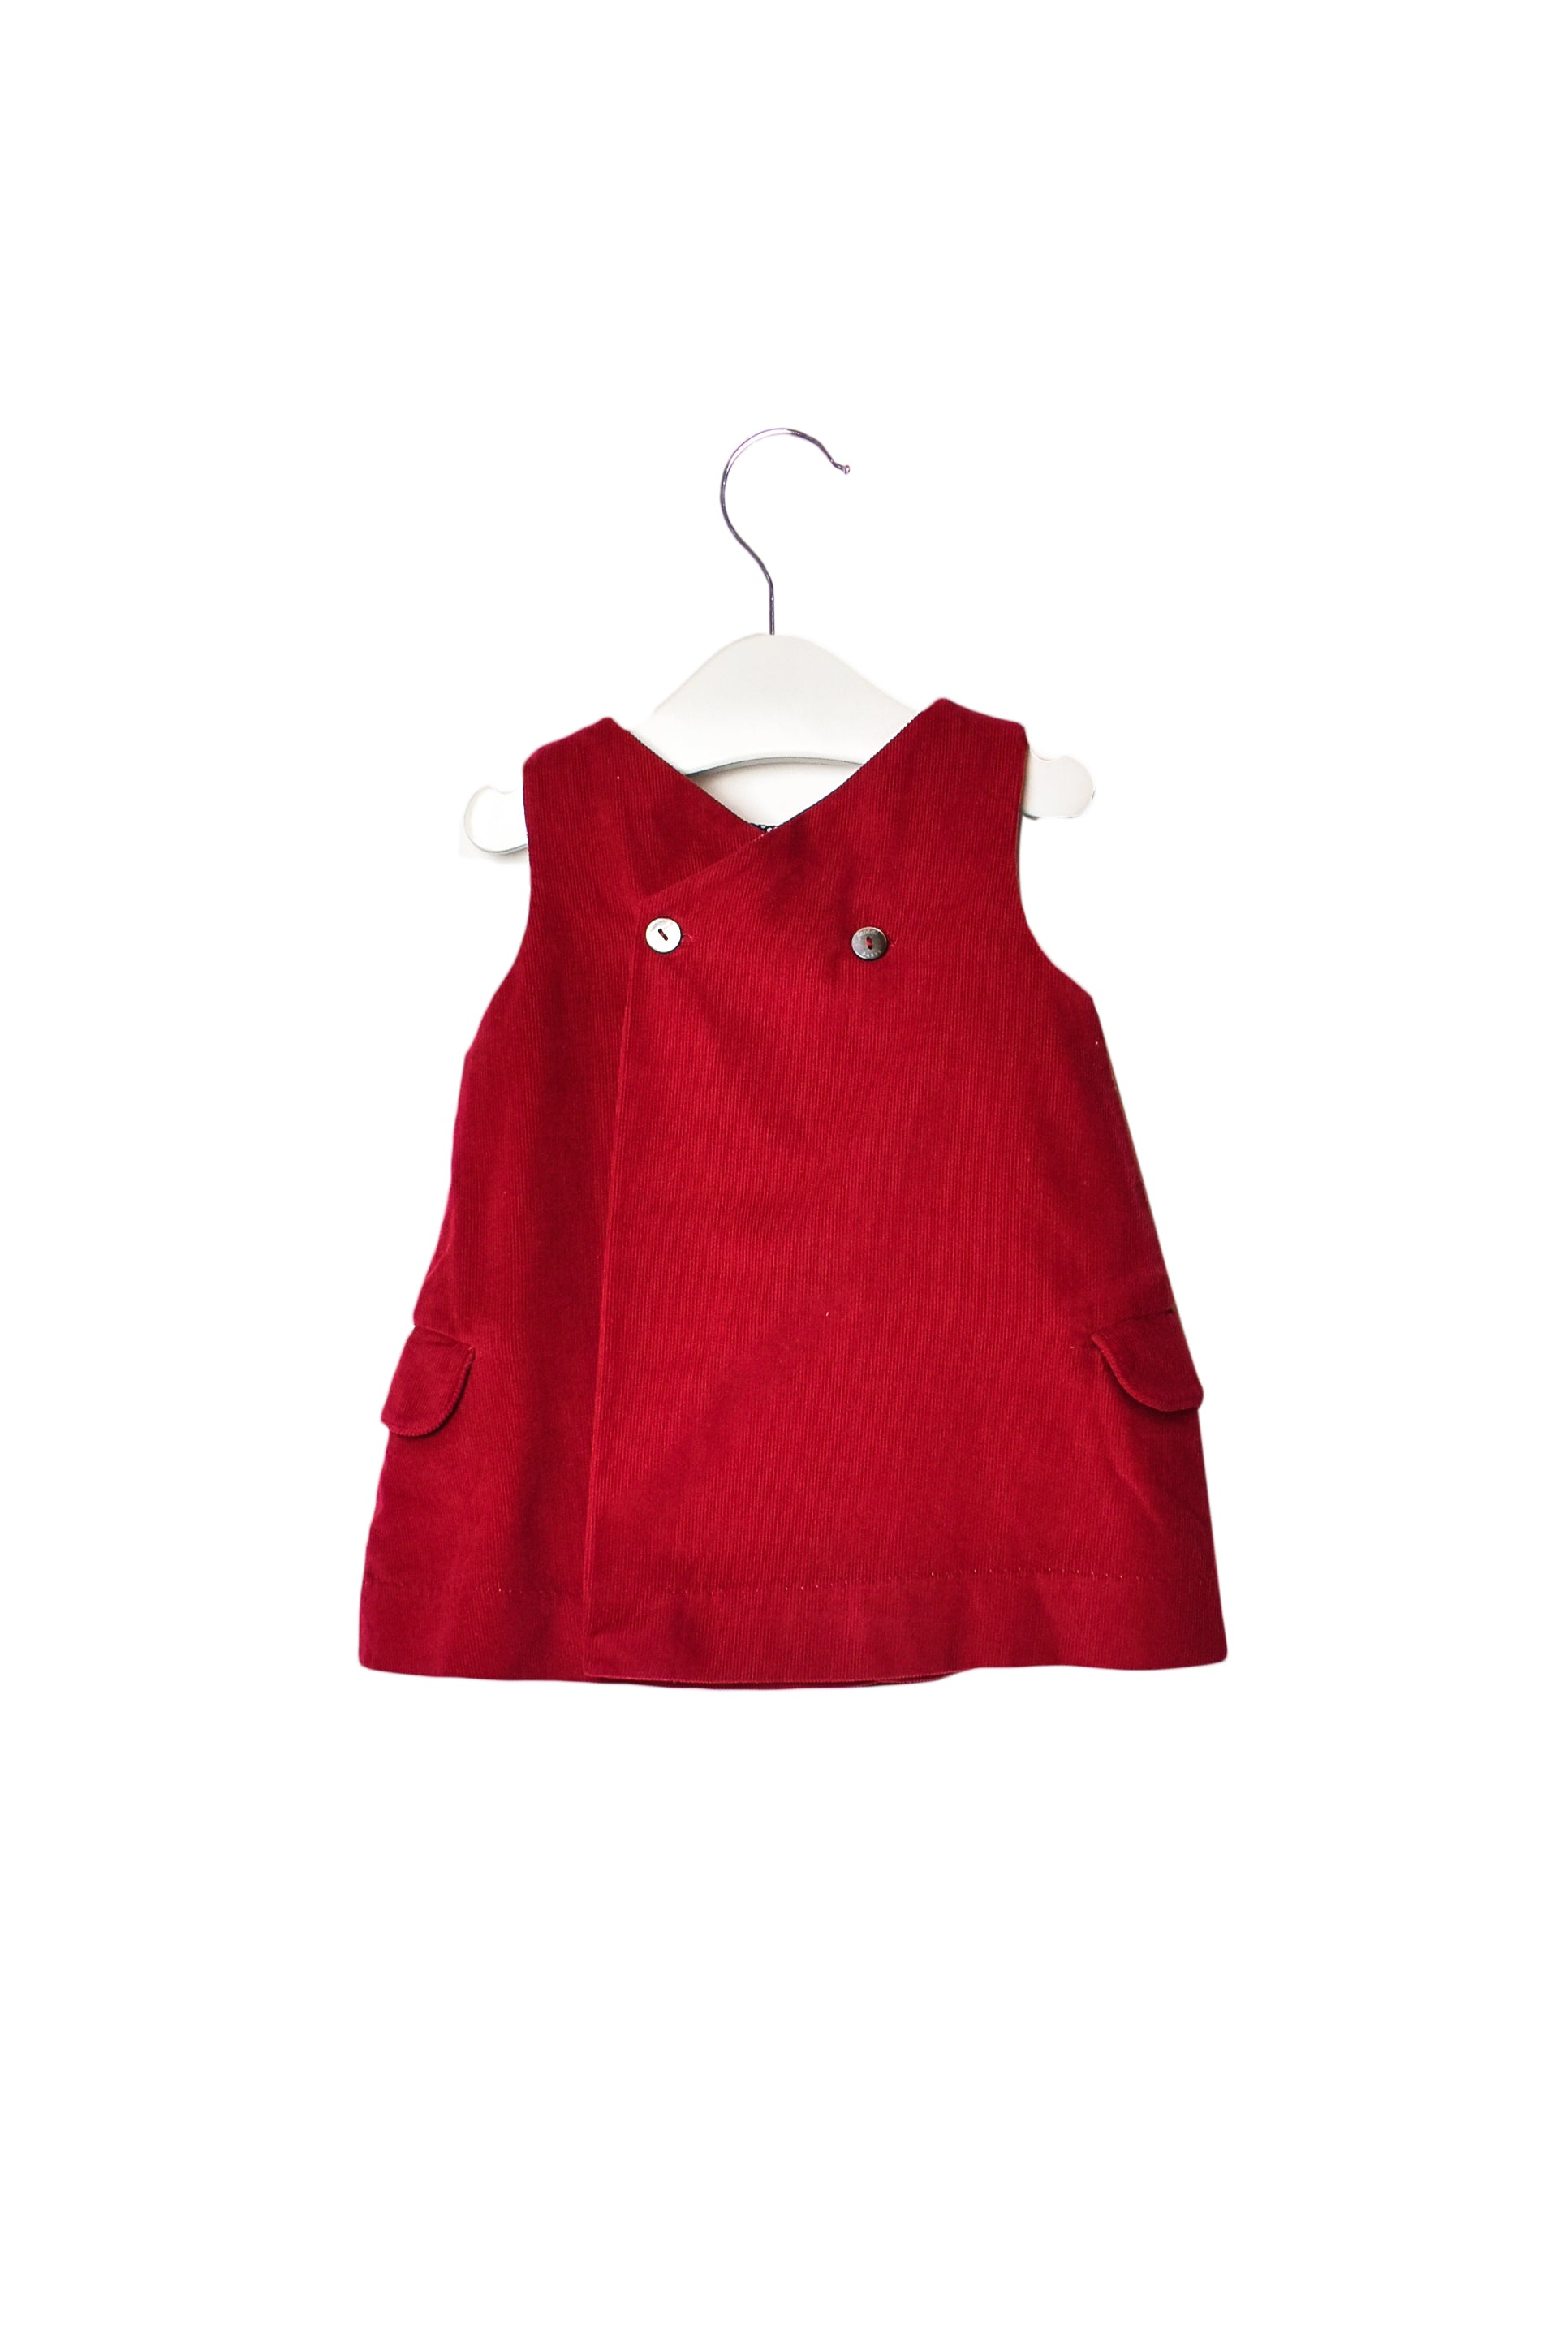 10008213 Jacadi Baby~ Dress 3M at Retykle